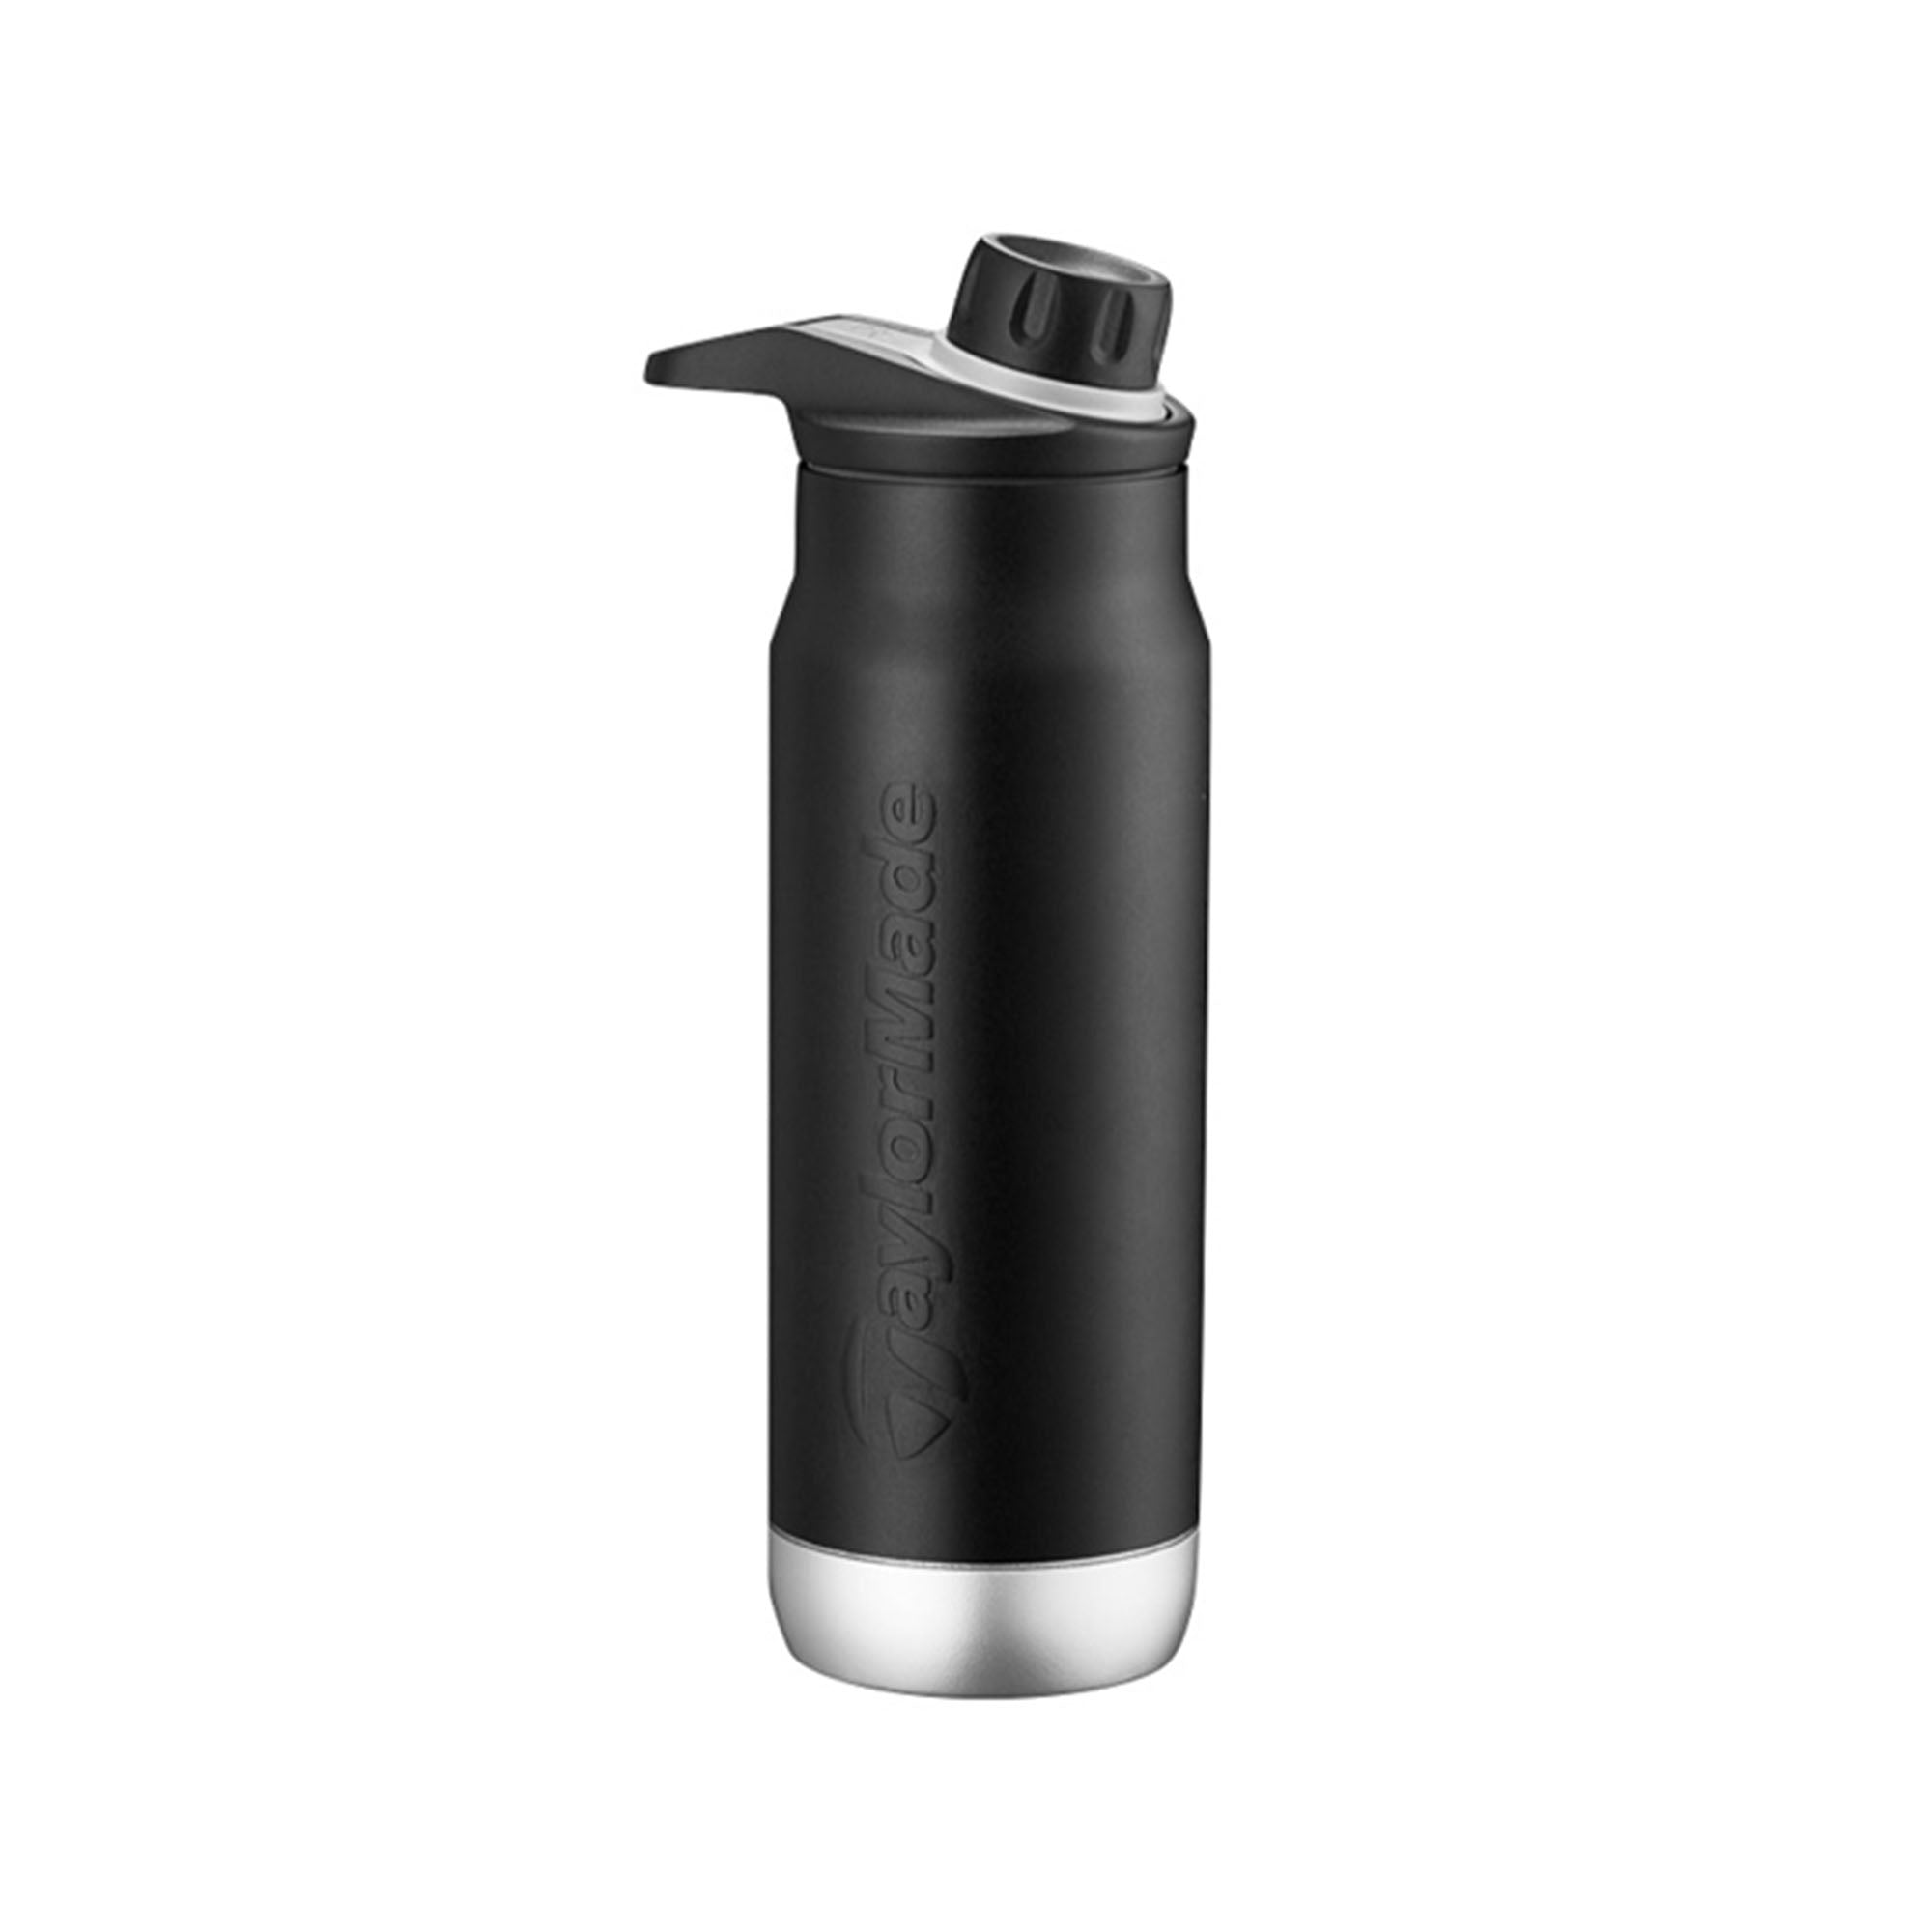 TaylorMade Golf Sports Bottle